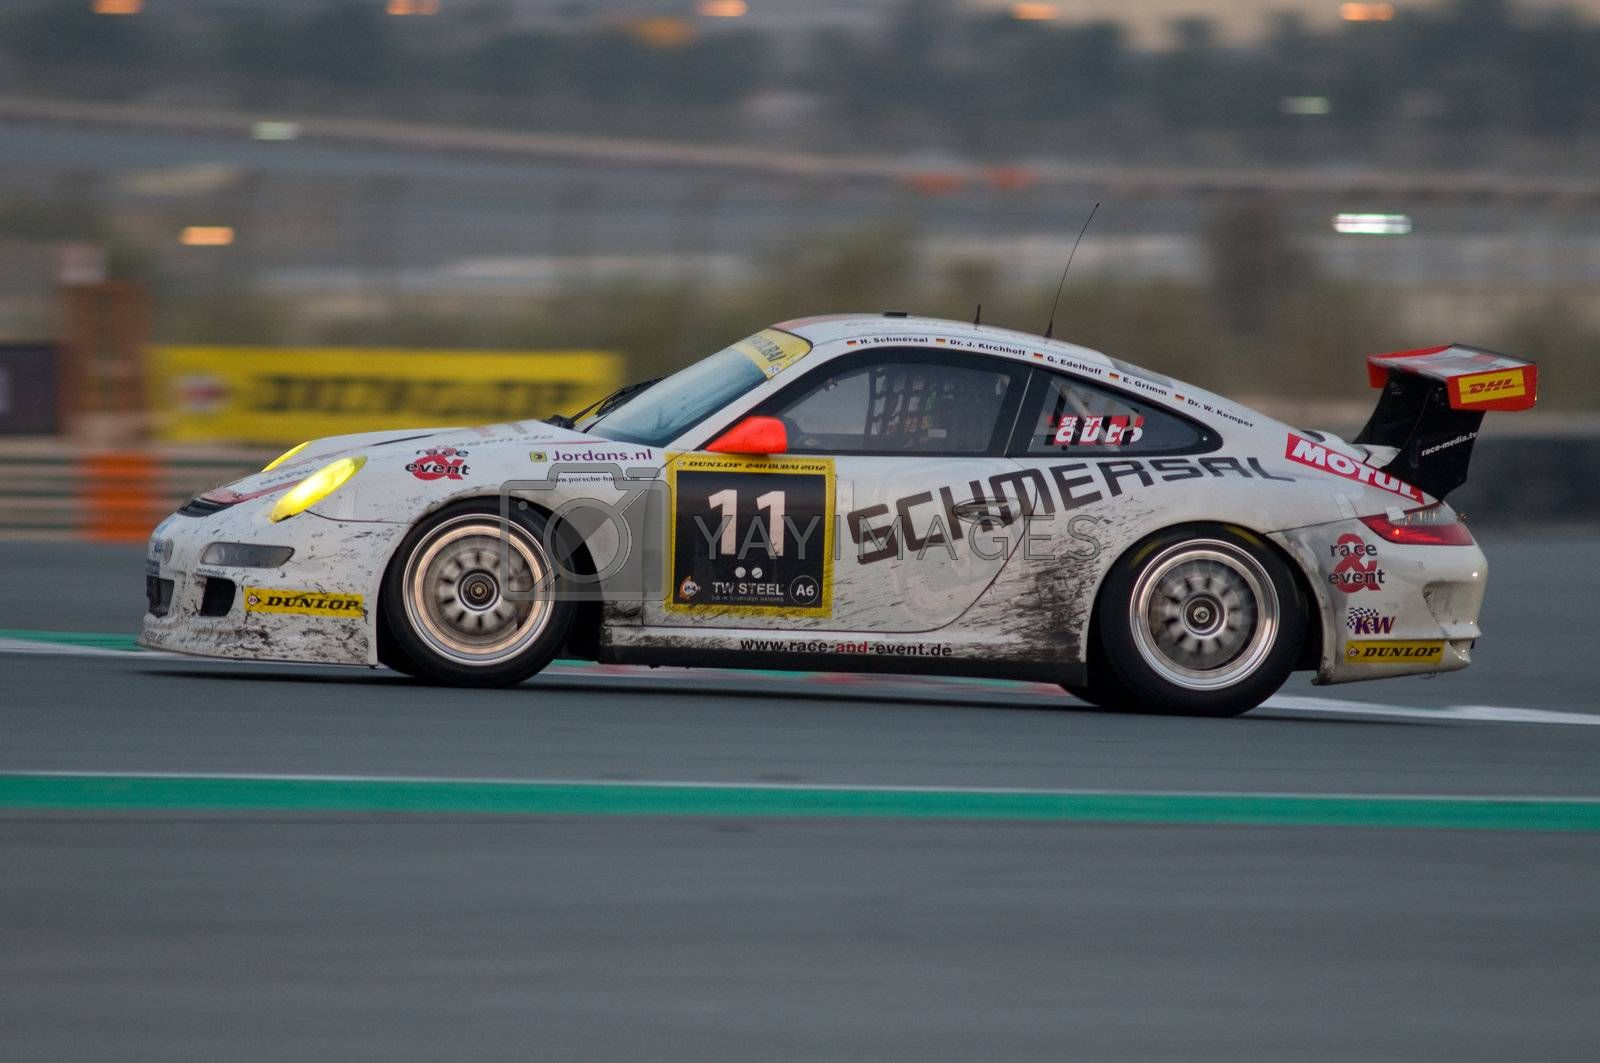 DUBAI - JANUARY 14: Car 11, a Porsche 997 GT3 Cup 5, in the morning hours during the 2012 Dunlop 24 Hour Race at Dubai Autodrome on January 14, 2012.